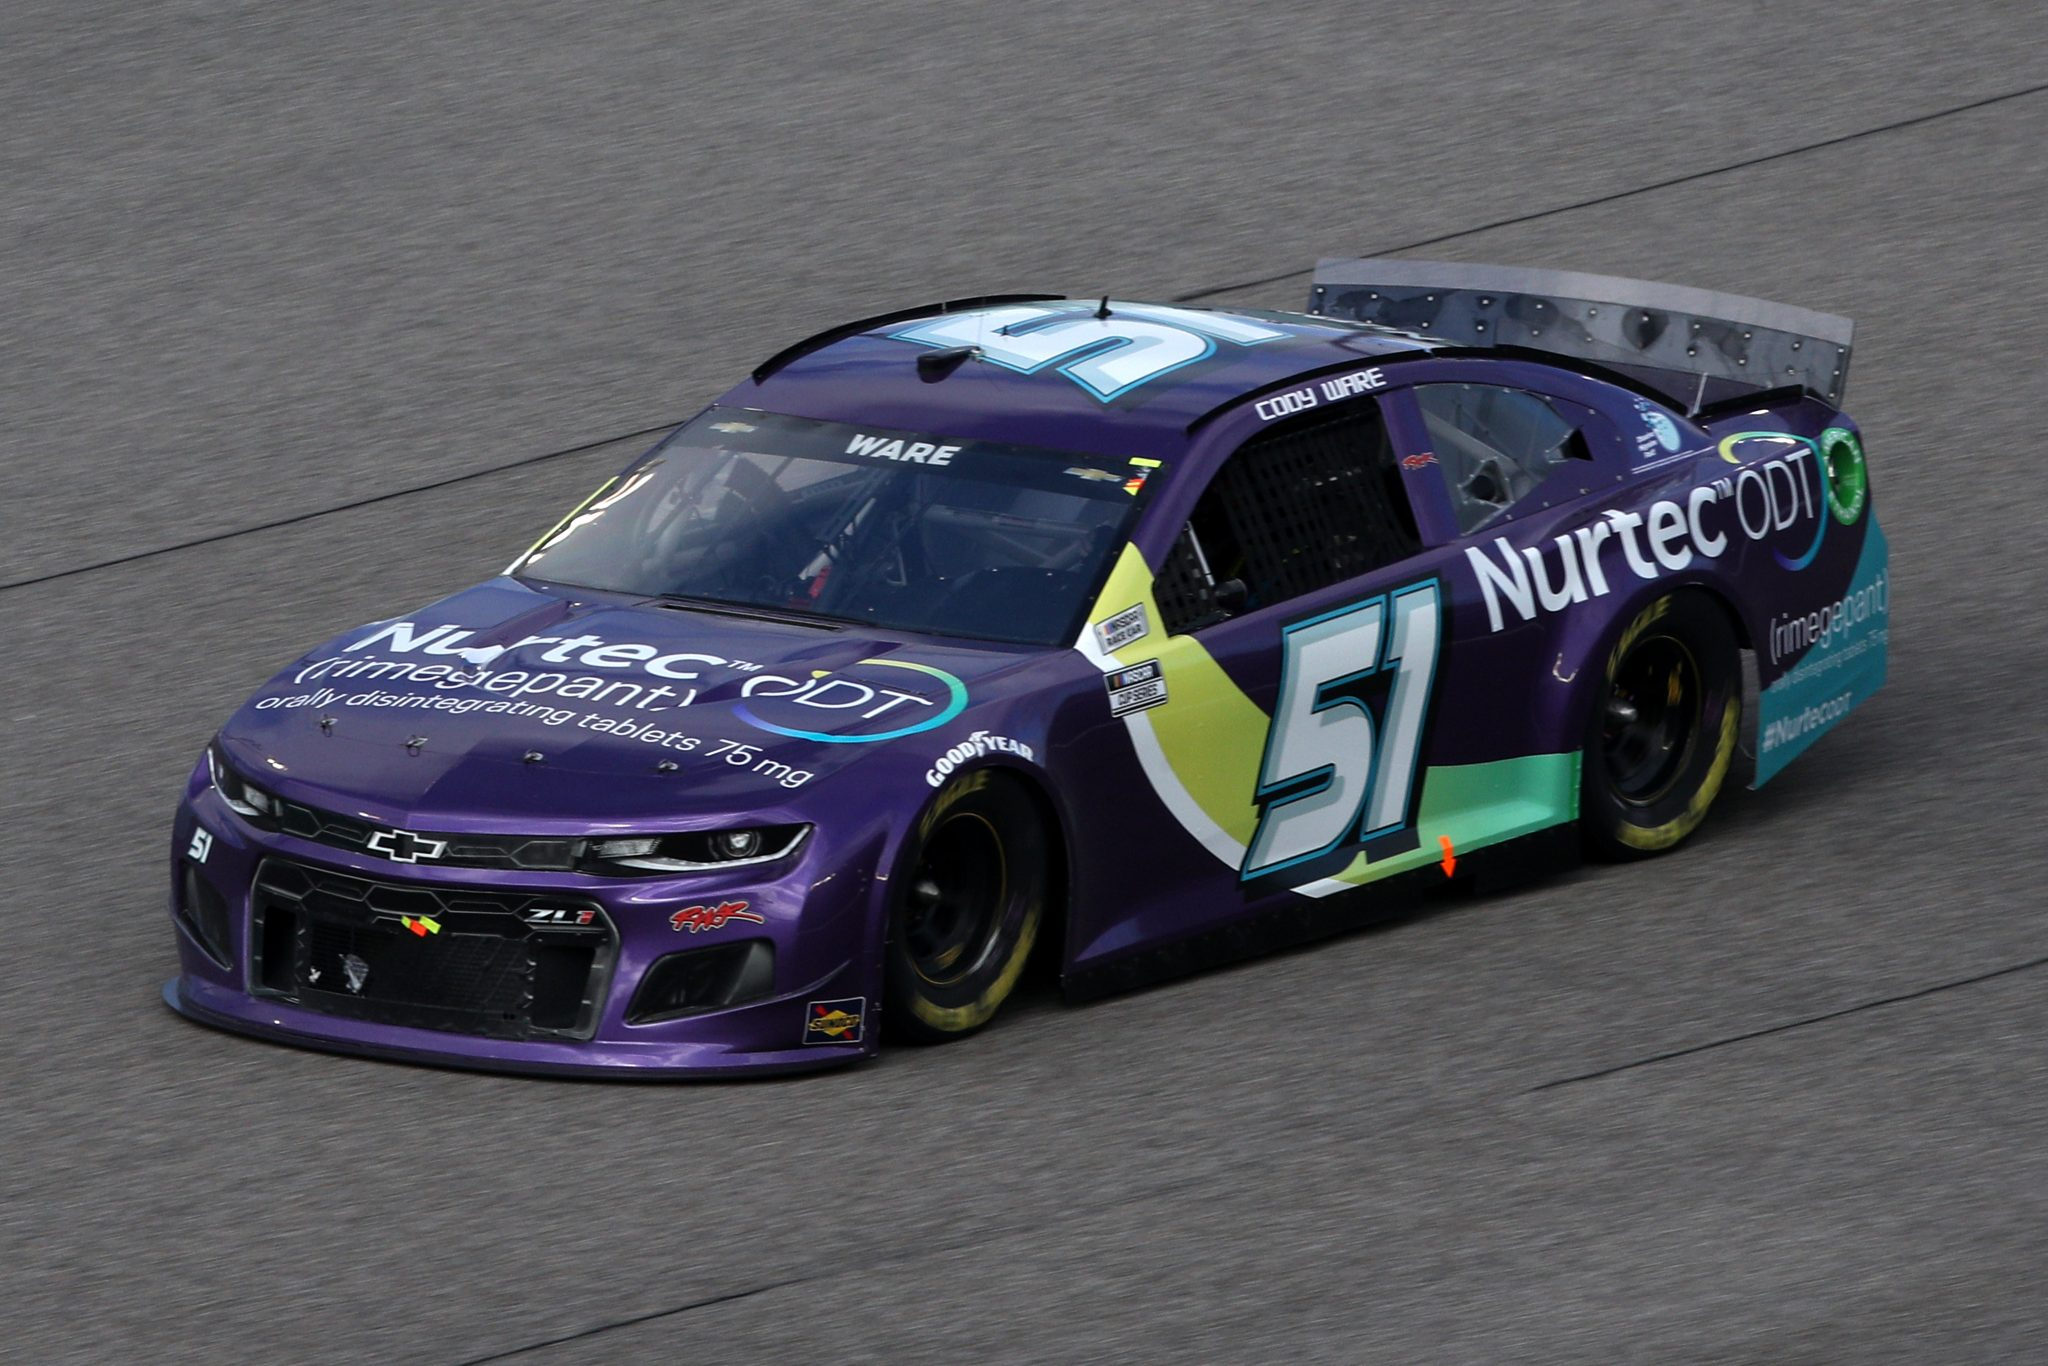 HOMESTEAD, FLORIDA - FEBRUARY 28: Cody Ware, driver of the #51 NURTEC ODT Chevrolet, drives during the NASCAR Cup Series Dixie Vodka 400 at Homestead-Miami Speedway on February 28, 2021 in Homestead, Florida. (Photo by Sean Gardner/Getty Images) | Getty Images